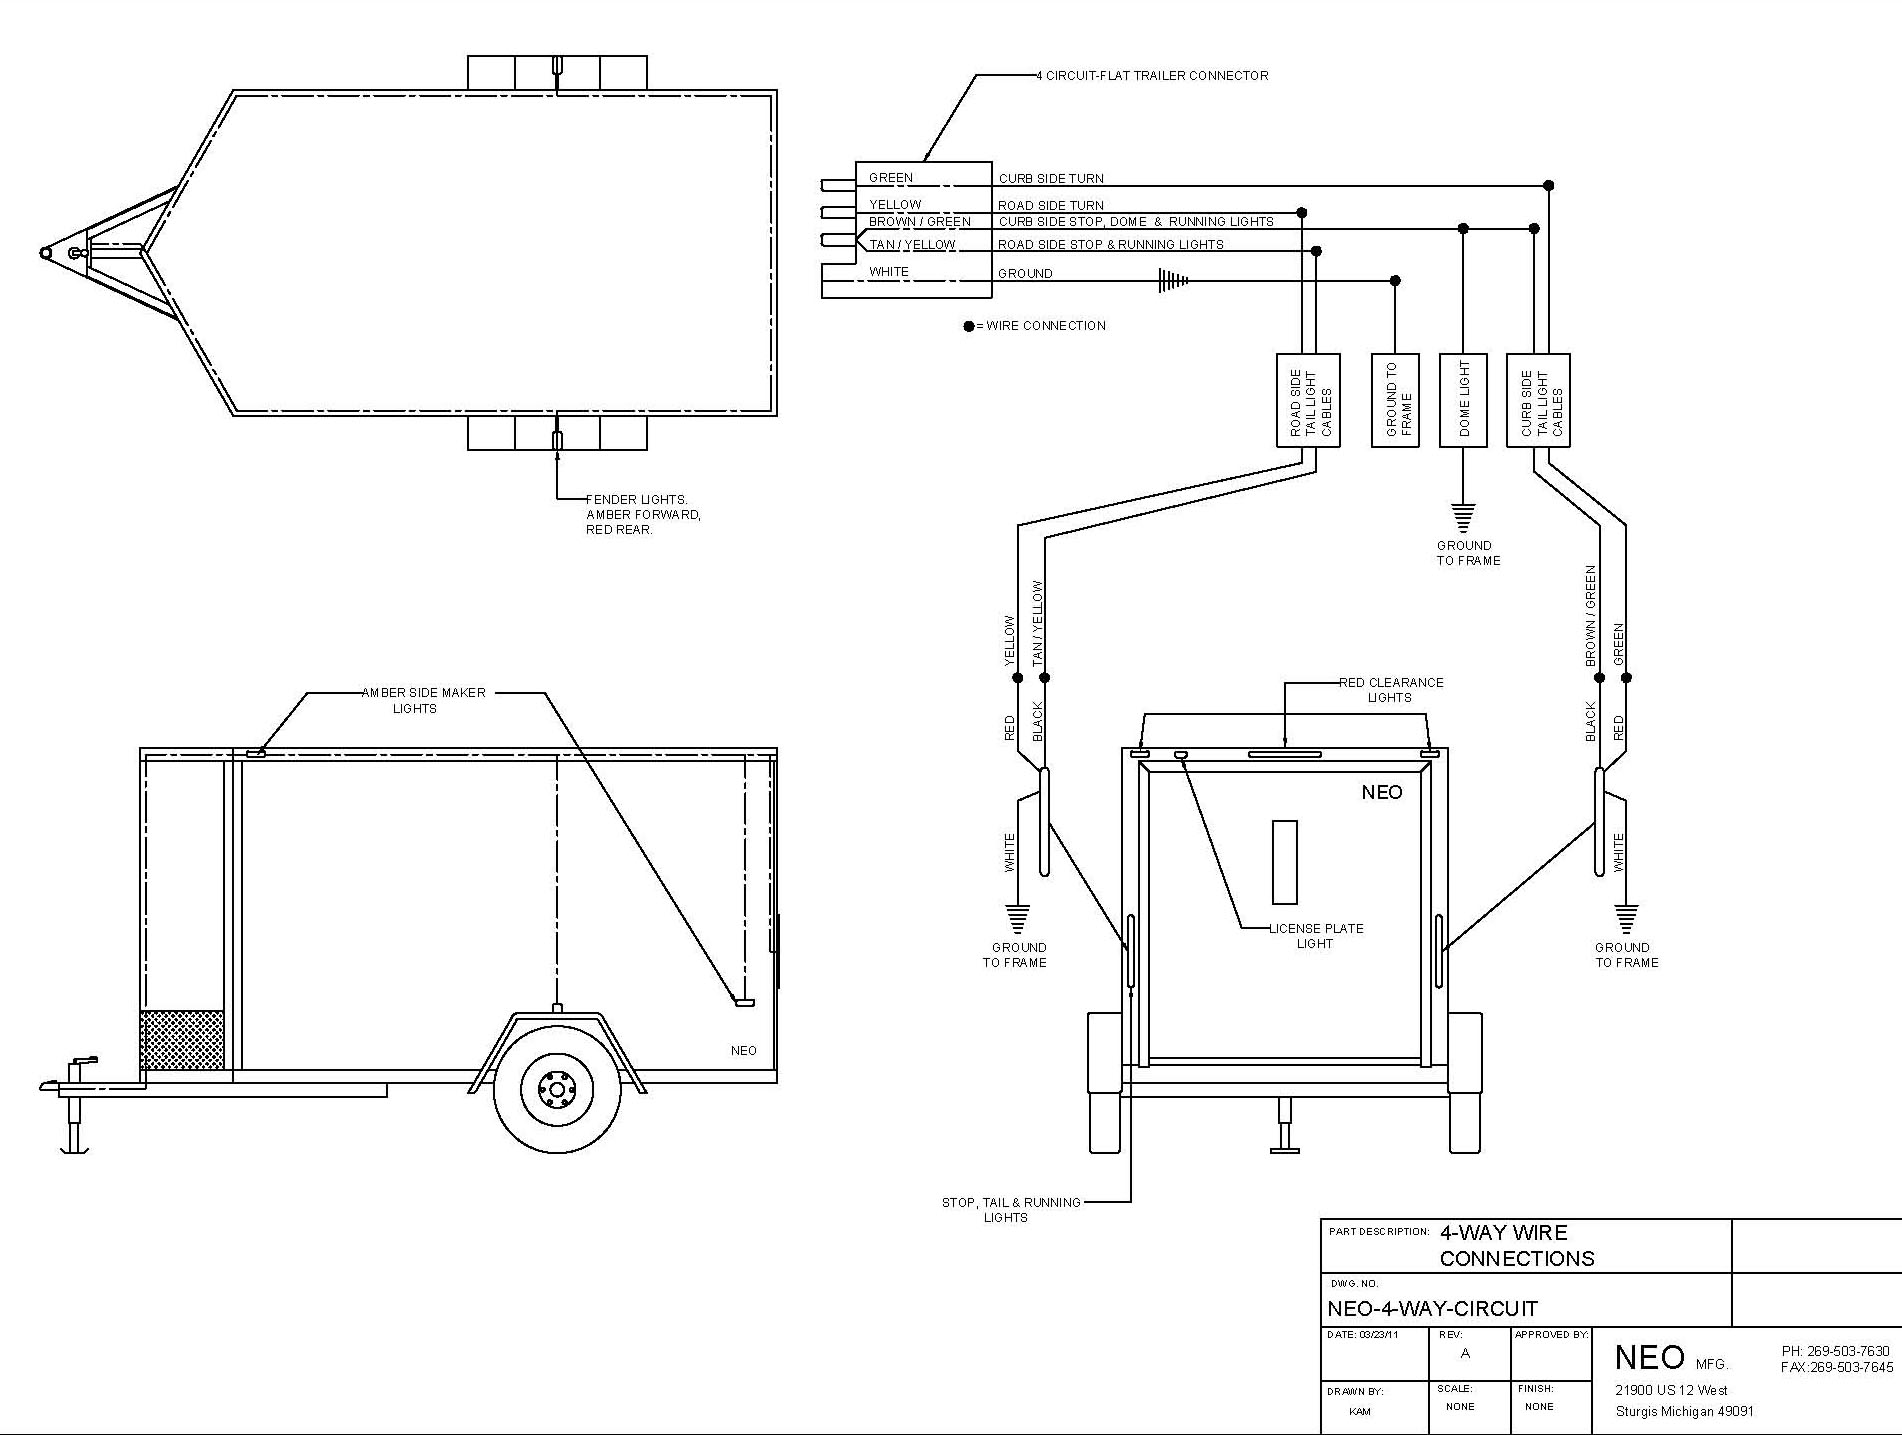 7 pin trailer wiring diagram electric kes with Wiring Electric Trailer Kes Diagram on 7 Pin Trailer Light Wiring Diagram With Kes moreover Electric Ke Wiring Diagram also 7 Way Trailer Wiring Diagram With Kes in addition 7 Blade Rv Plug Wiring Diagram furthermore Ford Trailer Ke Wiring Diagram.